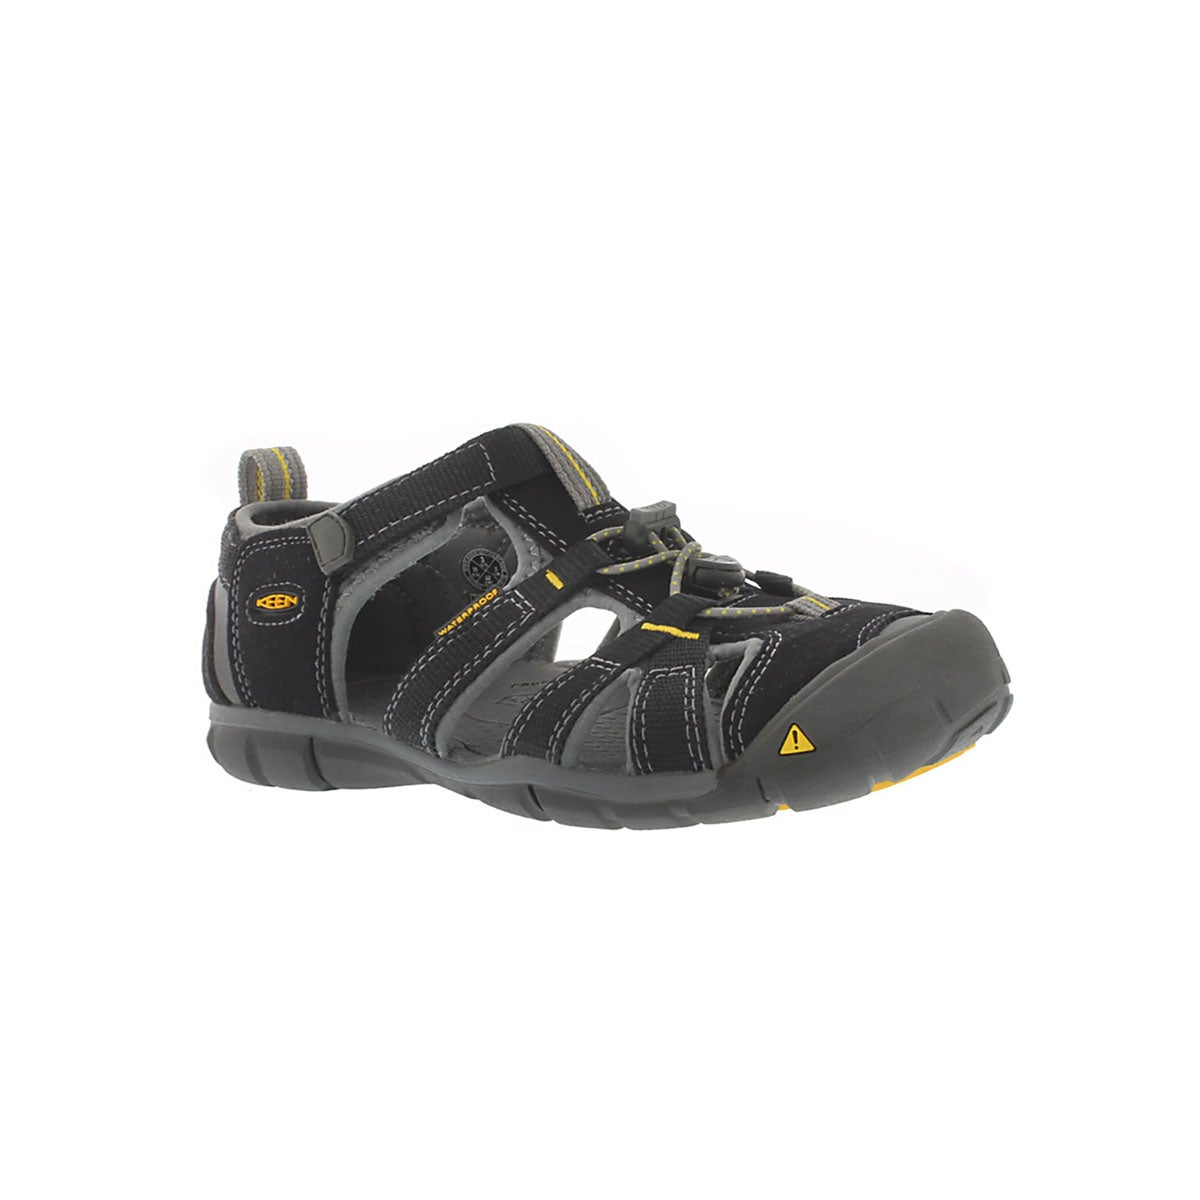 Infants' SEACAMP II black sport sandals